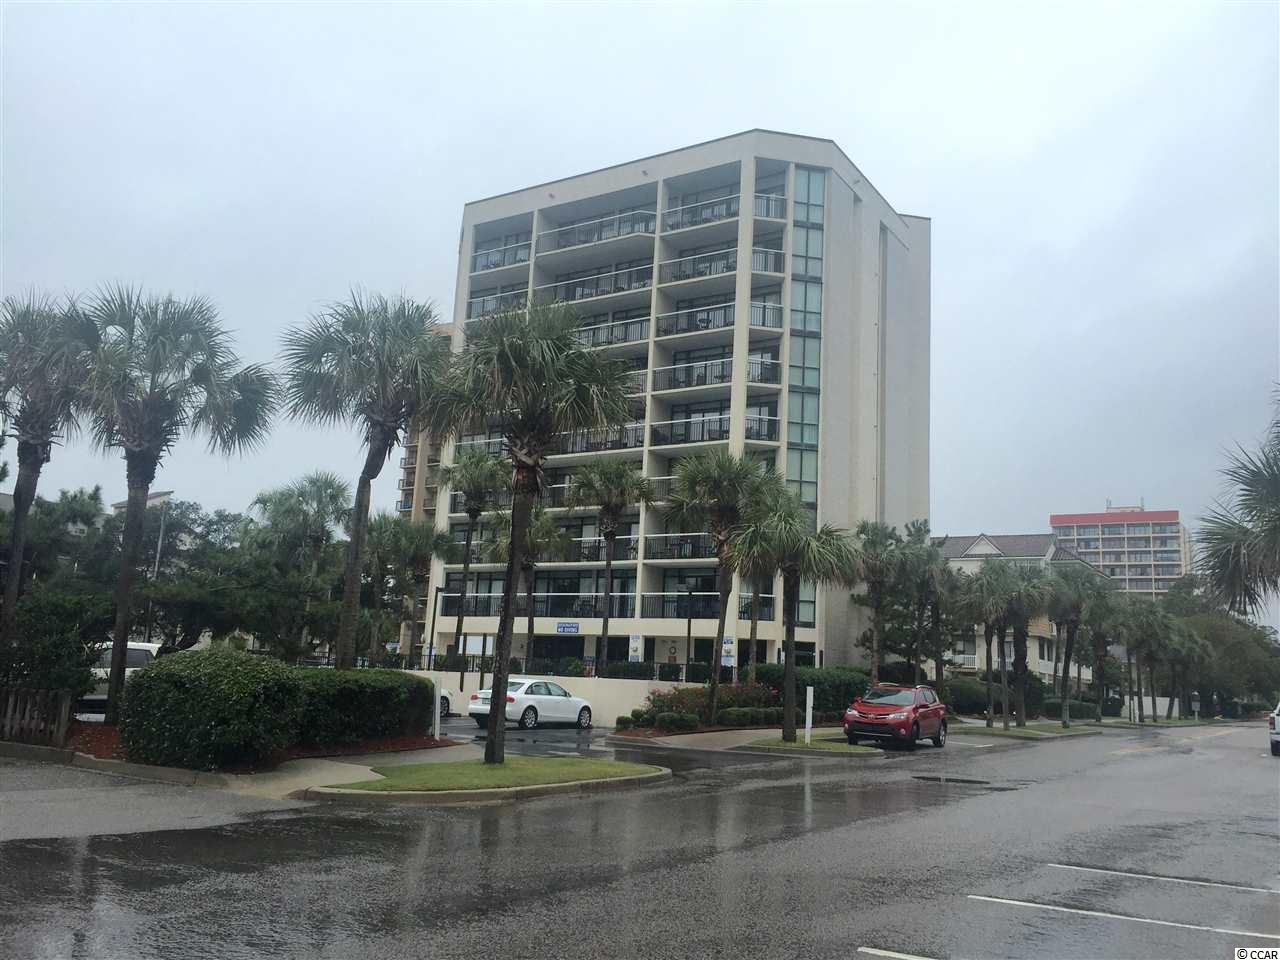 Condo For Sale At Carolina Winds In Myrtle Beach South Carolina Unit Listing Mls Number 1521842